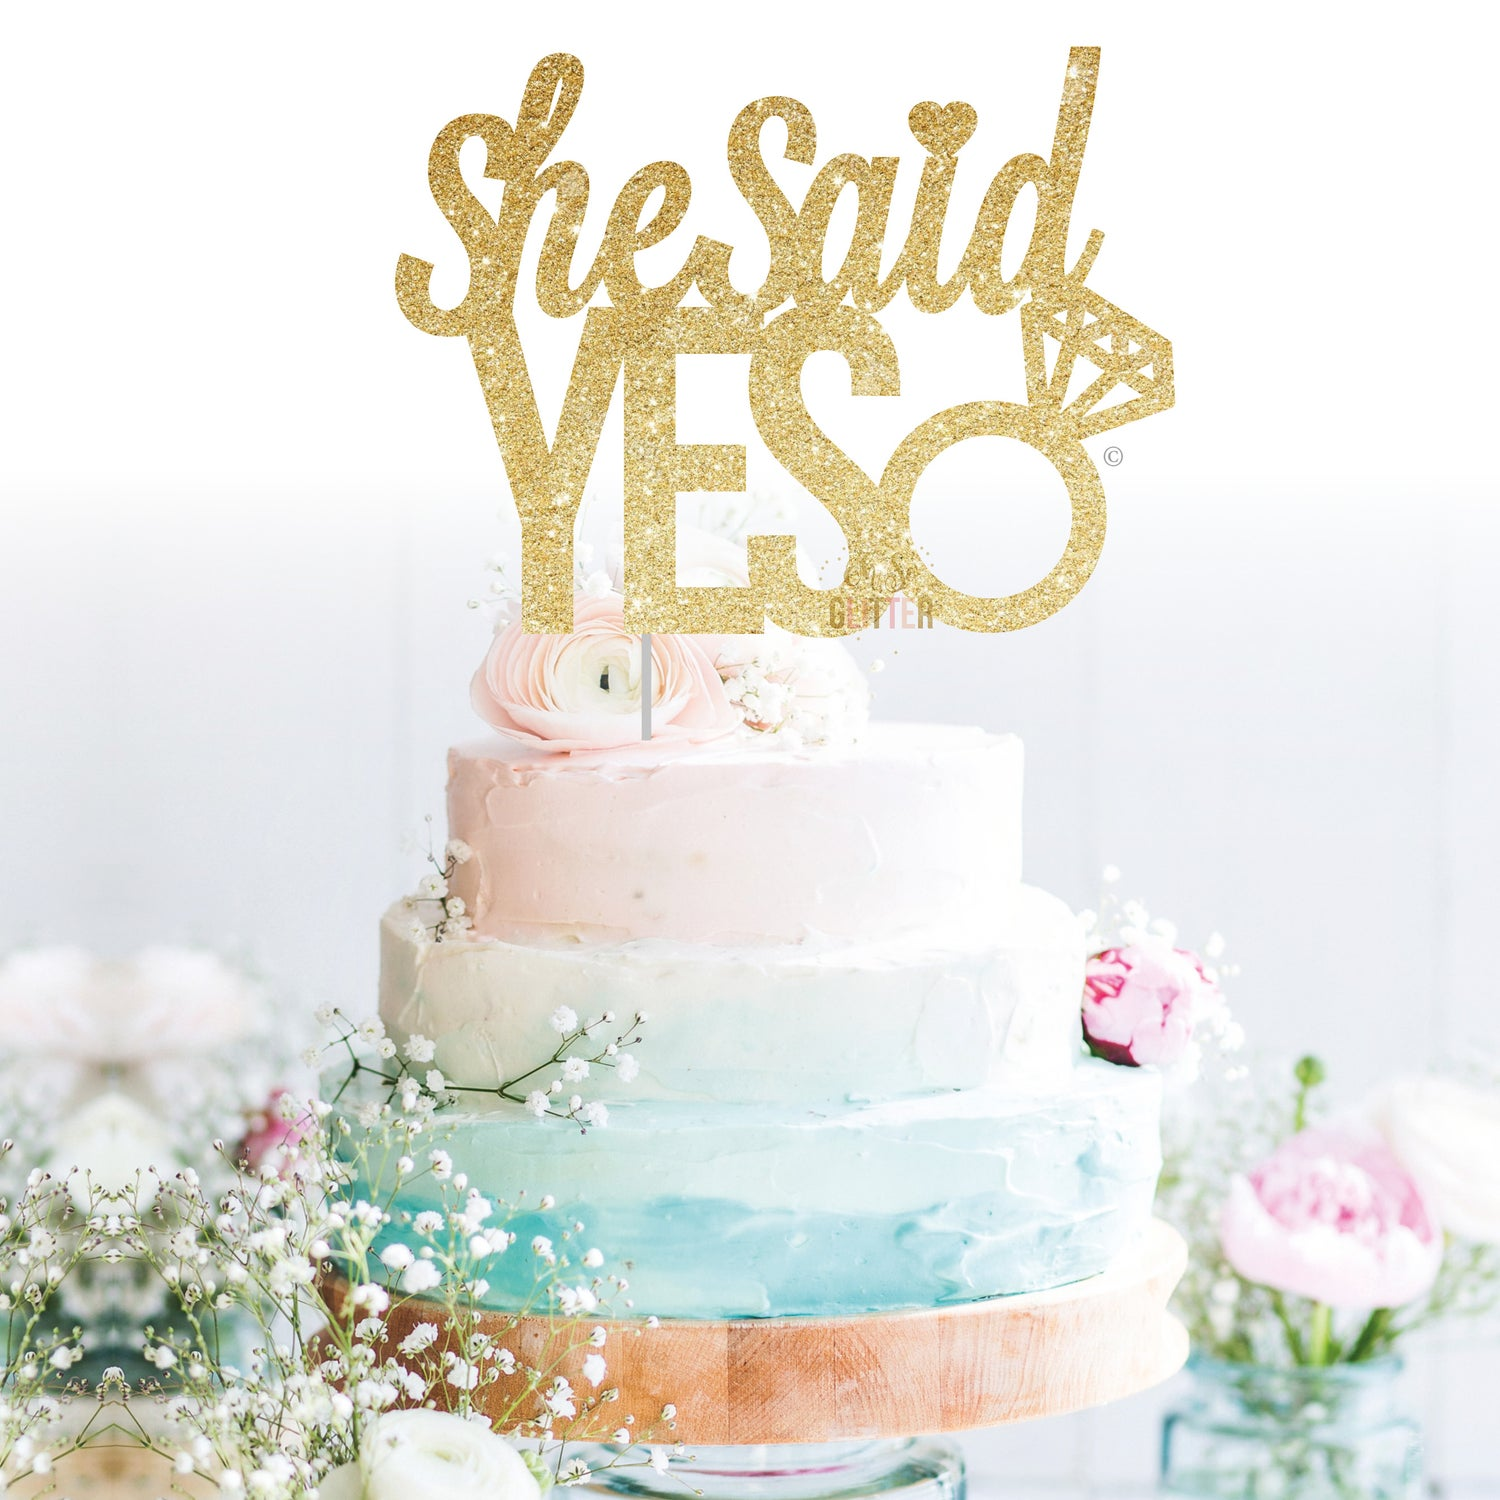 Image of She Said YES cake topper